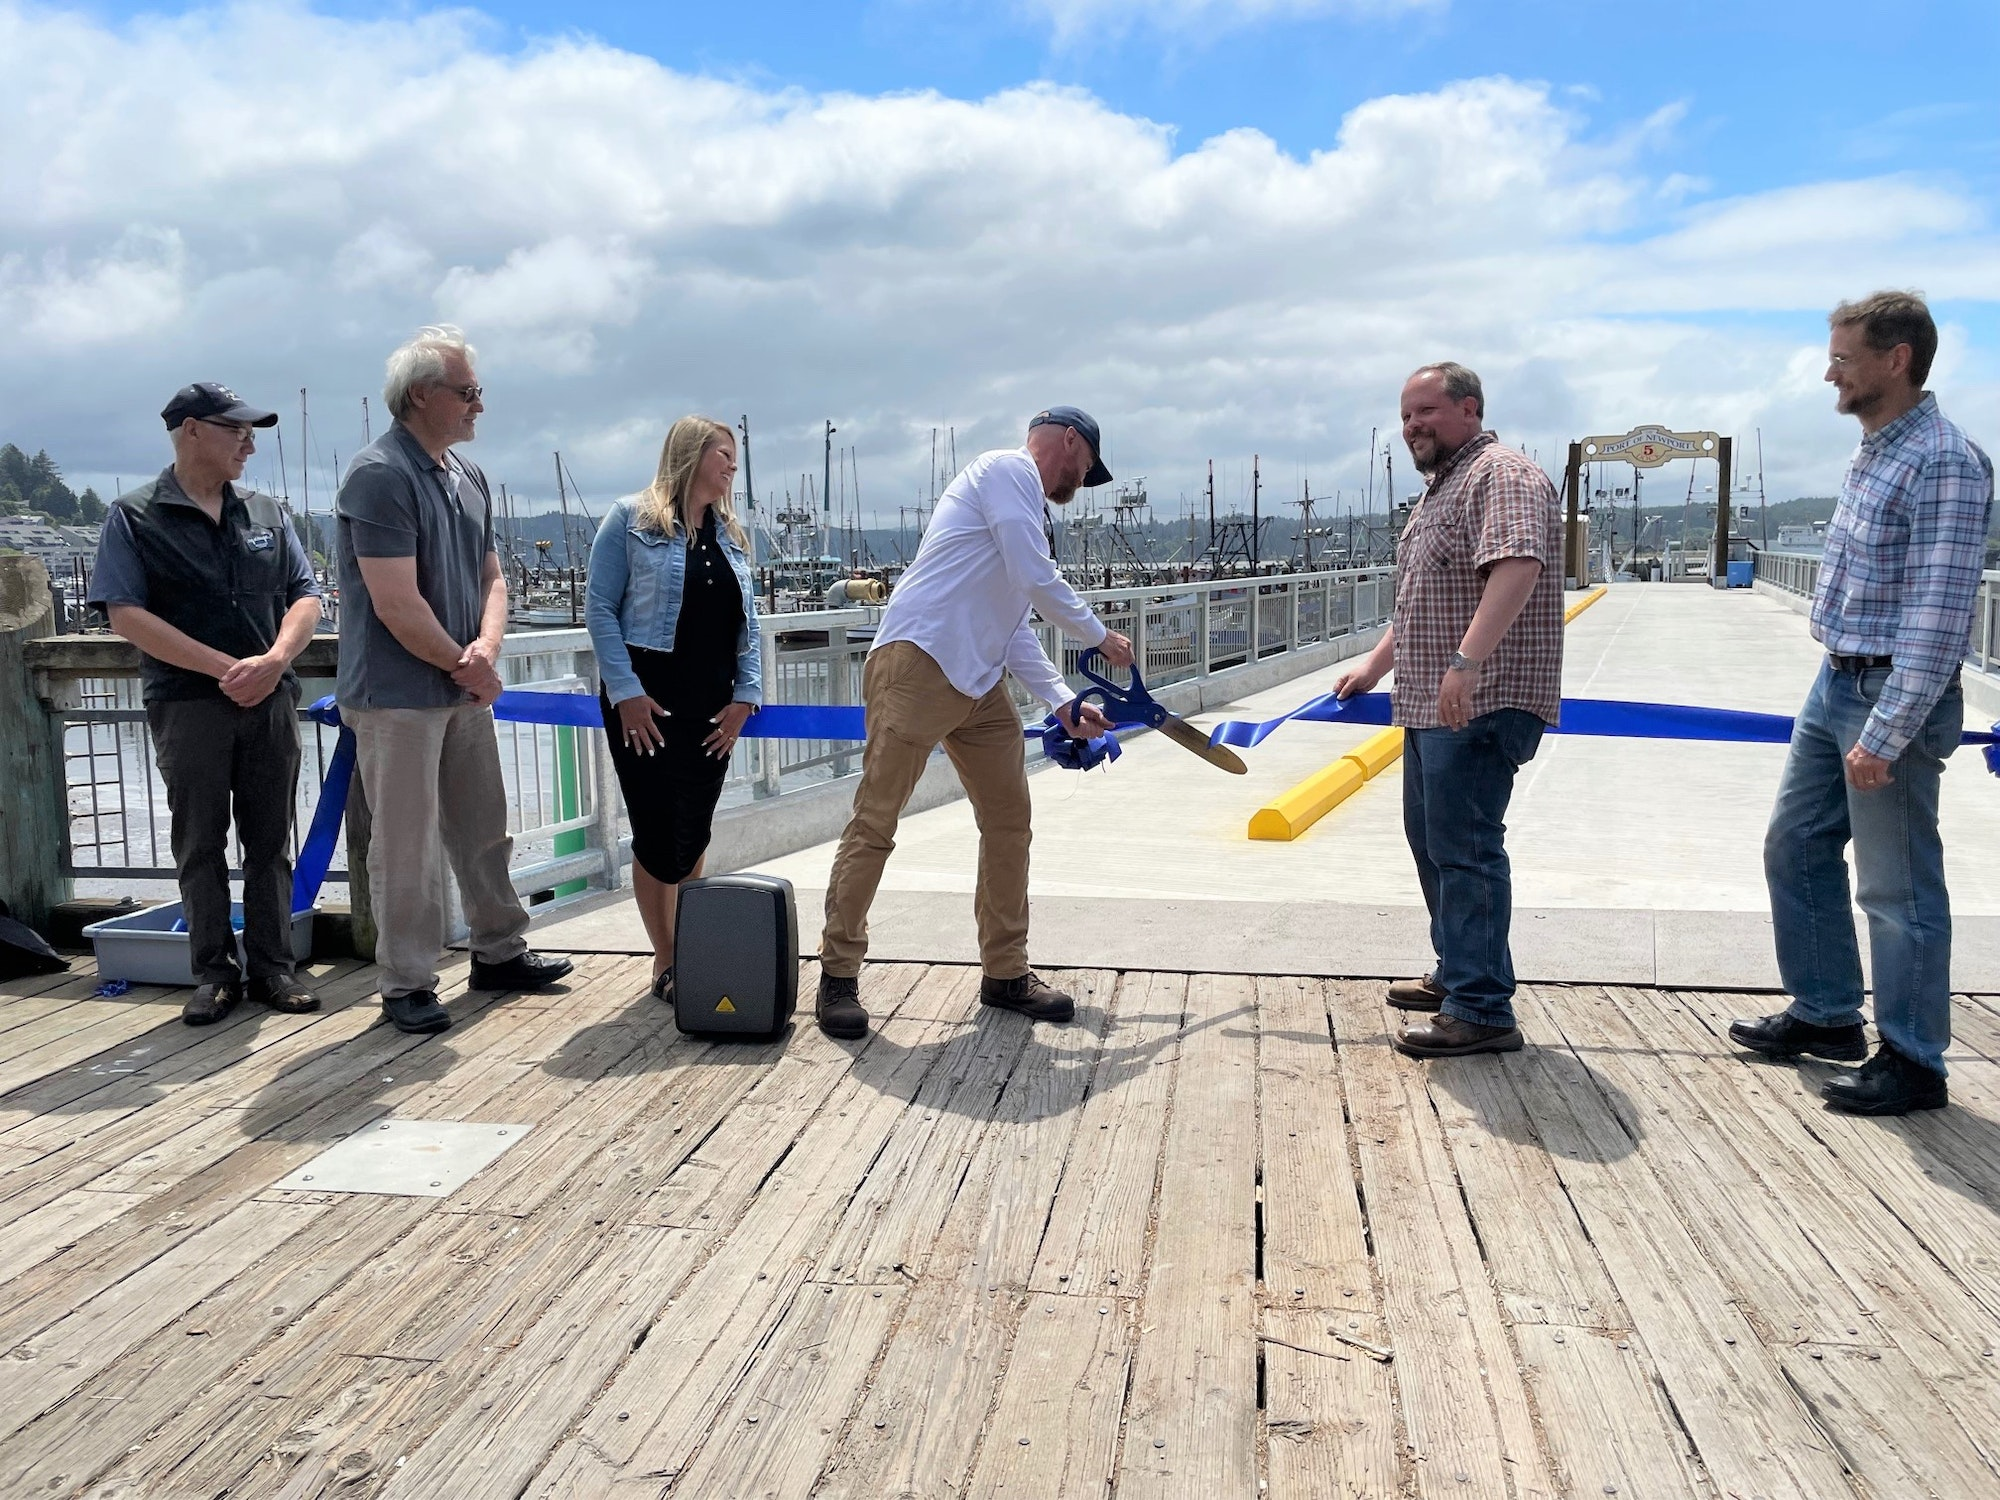 Port Commission President cuts the ribbon to officially open the pier.